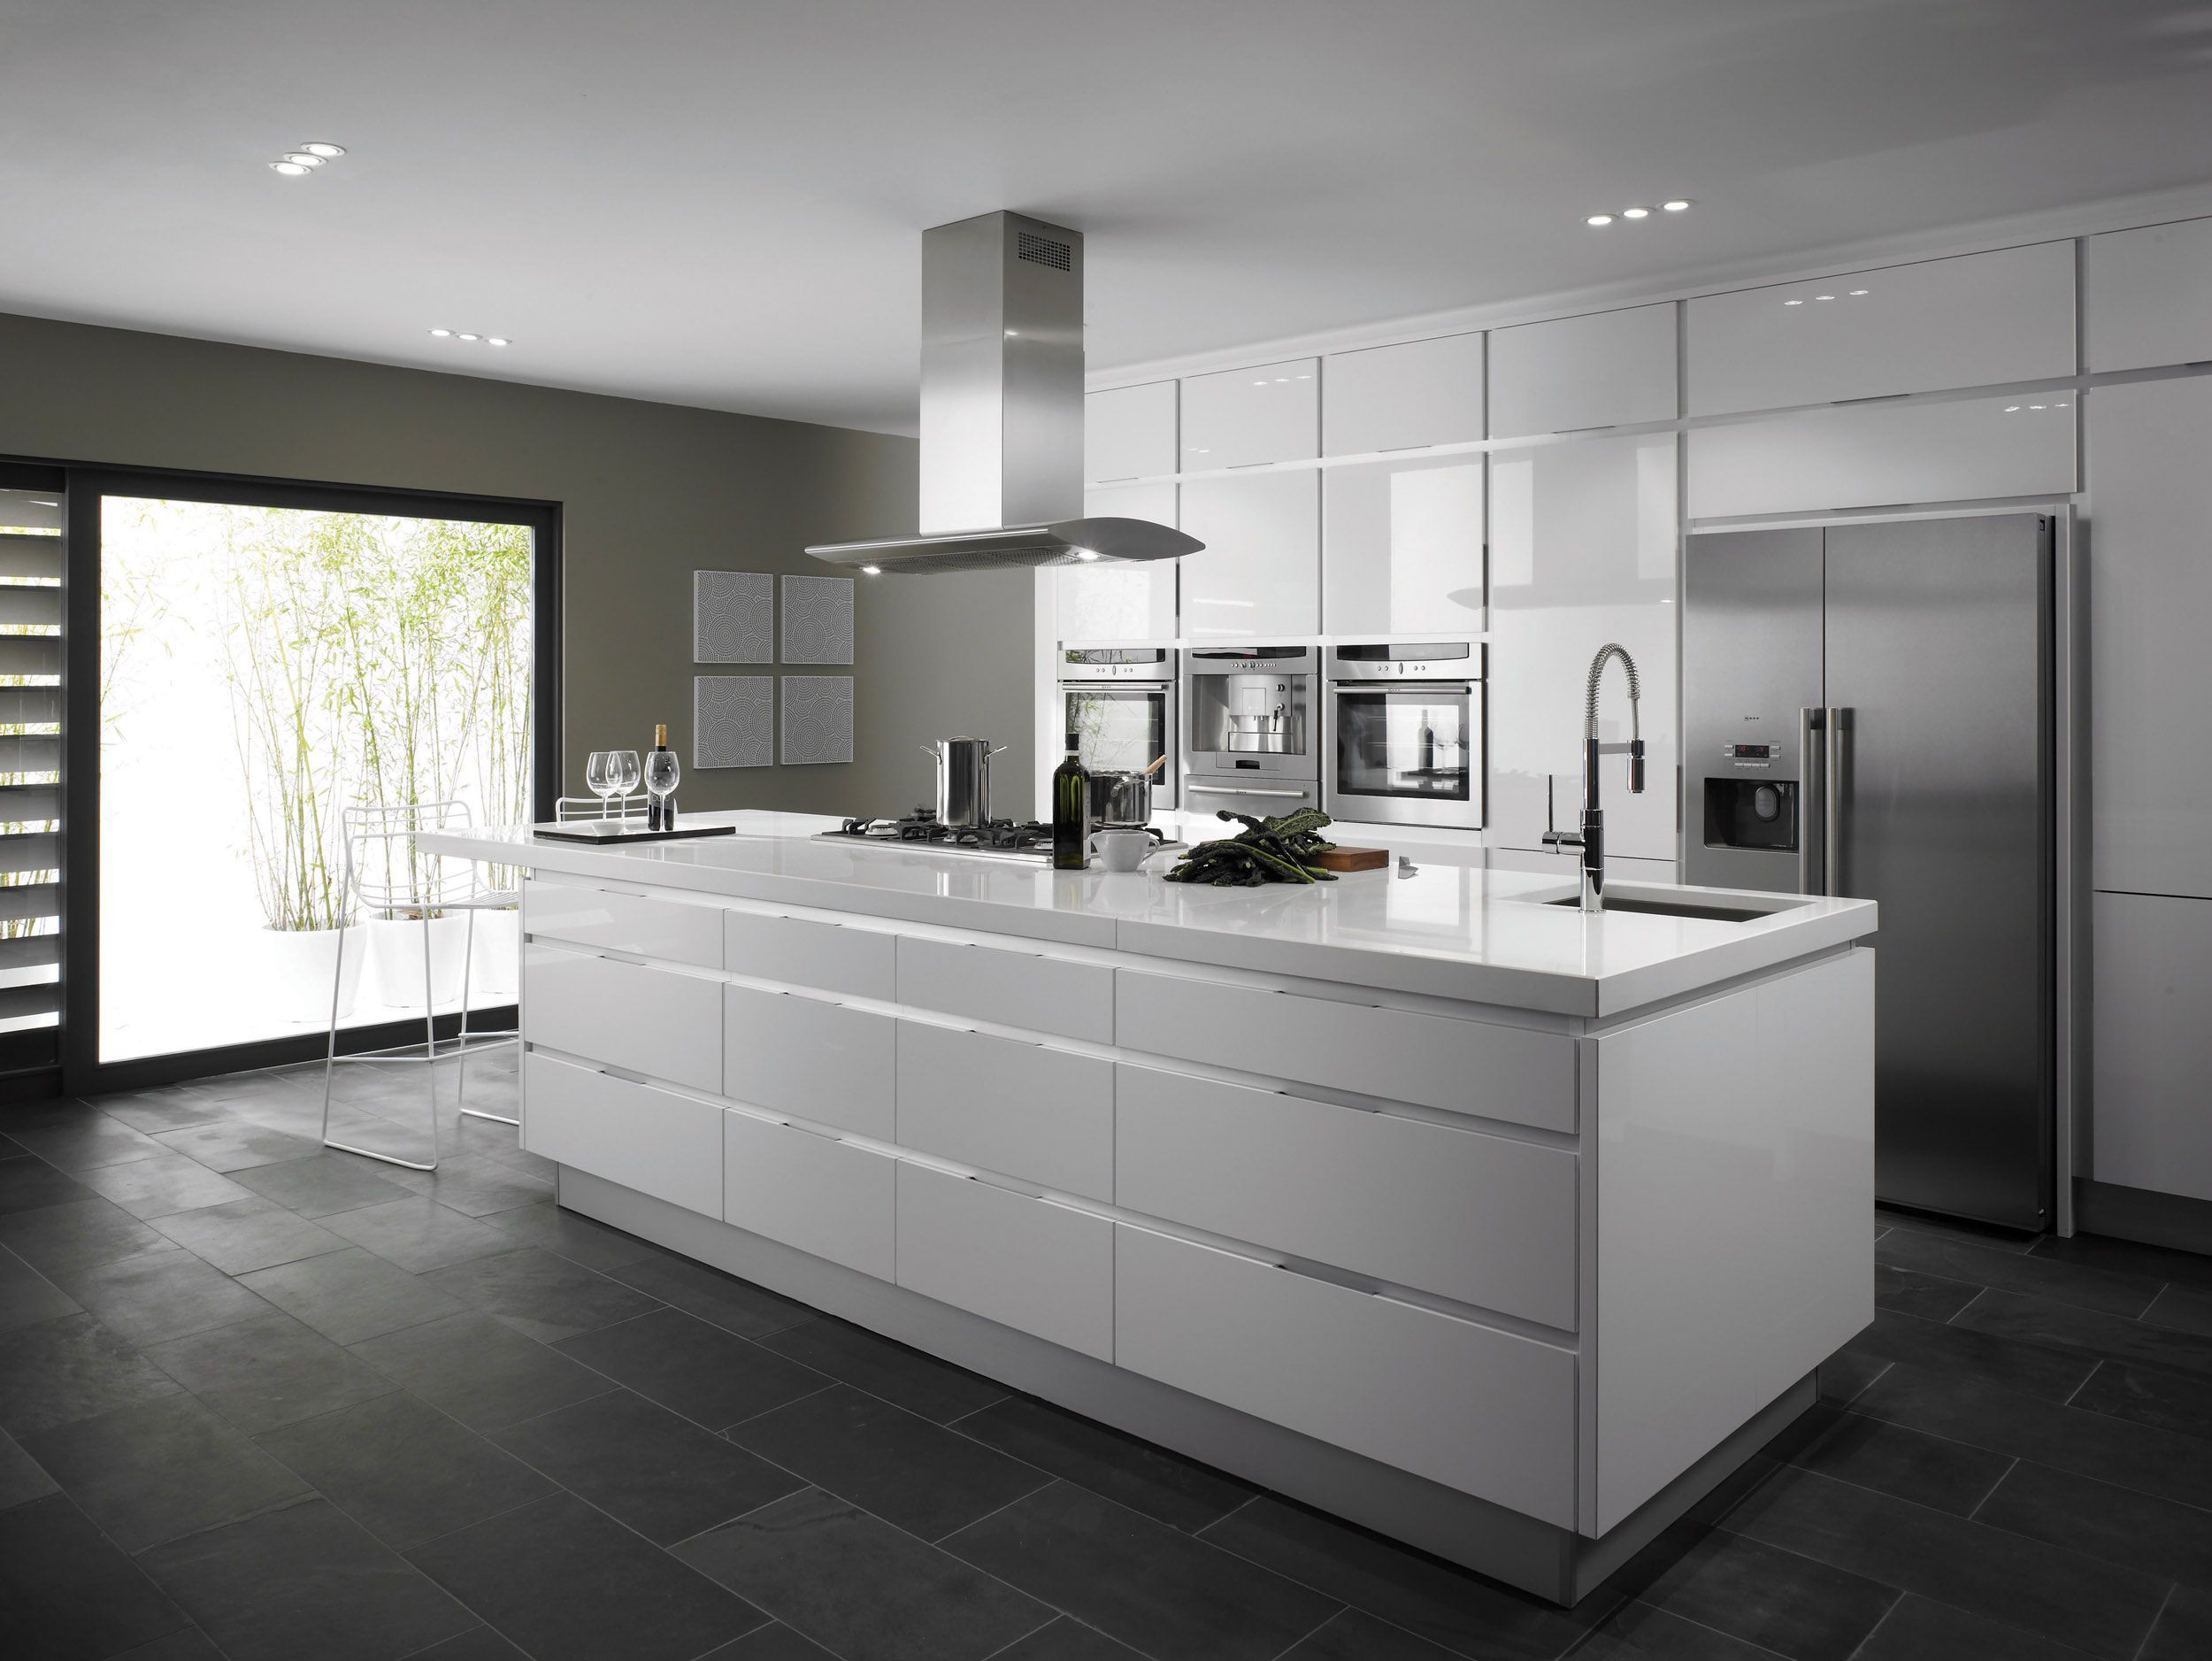 white kitchen dark floors Kitchen Decoration Fashionable Chrome Free Standing Range Hood Dark Tiles Kitchen FloorsModern White